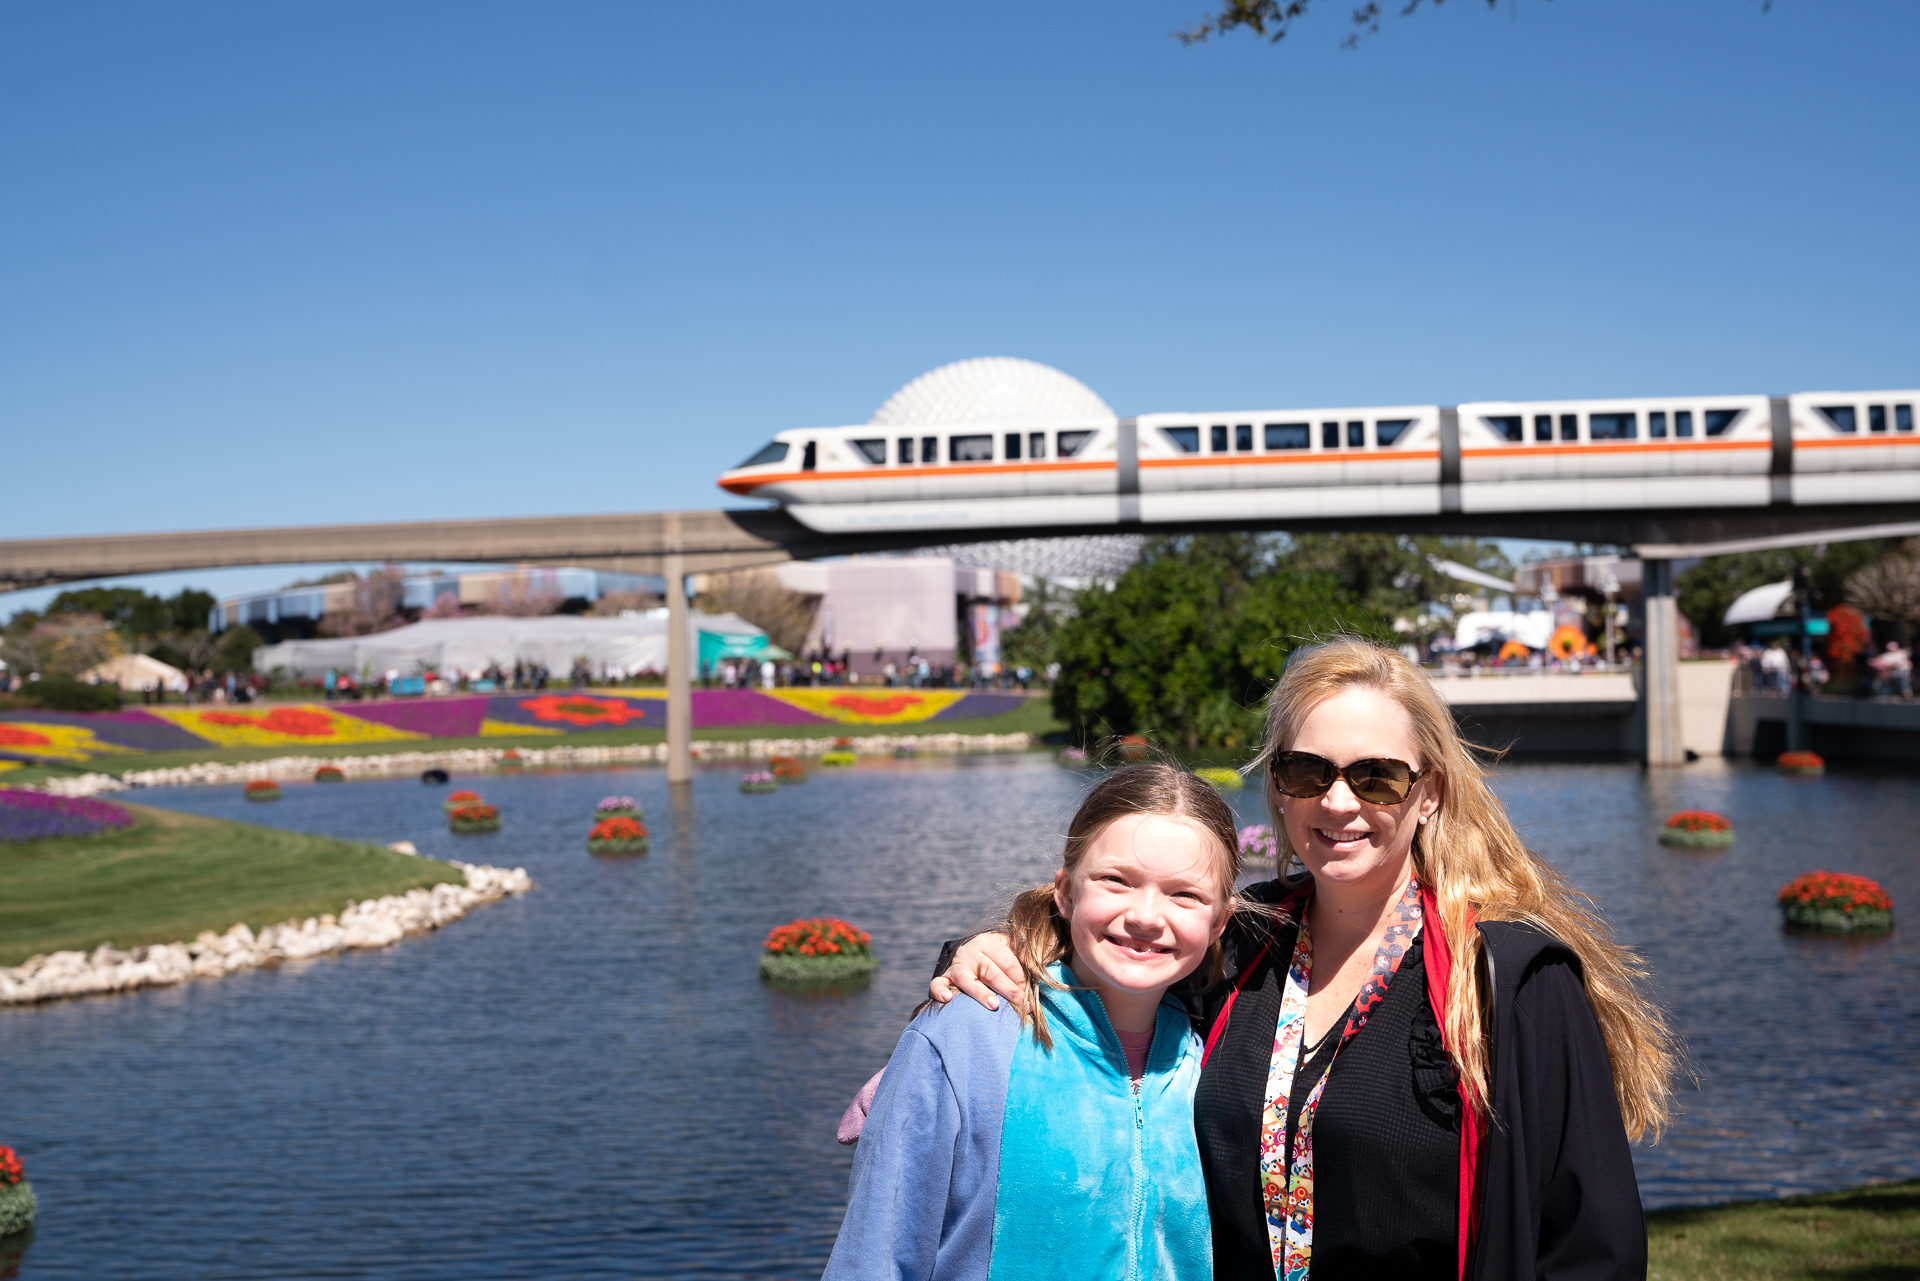 Mother and daughter in front of the monorail in Epcot at Walt Disney World